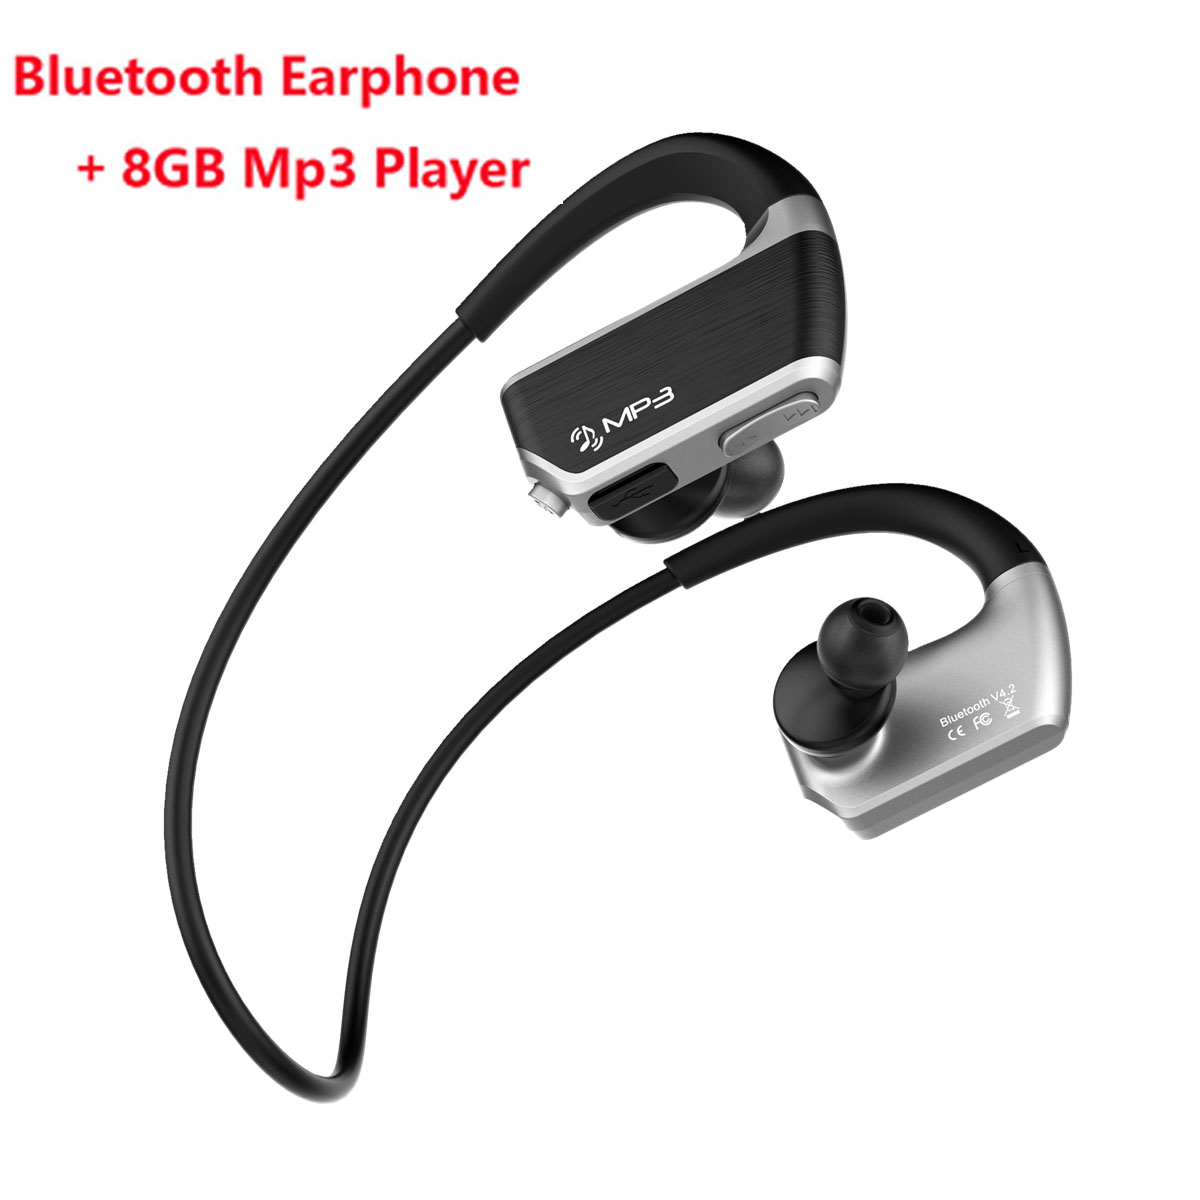 J2 IPX4 Waterproof Mp3 Music Player 8GB+Wireless Bluetooth Earphone Sport Earbuds Headset Handsfree Headphone with Mic for Phone luoka new wireless stereo bluetooth headset music headphone sport bluetooth earphone handsfree in ear earbuds mp3 media play